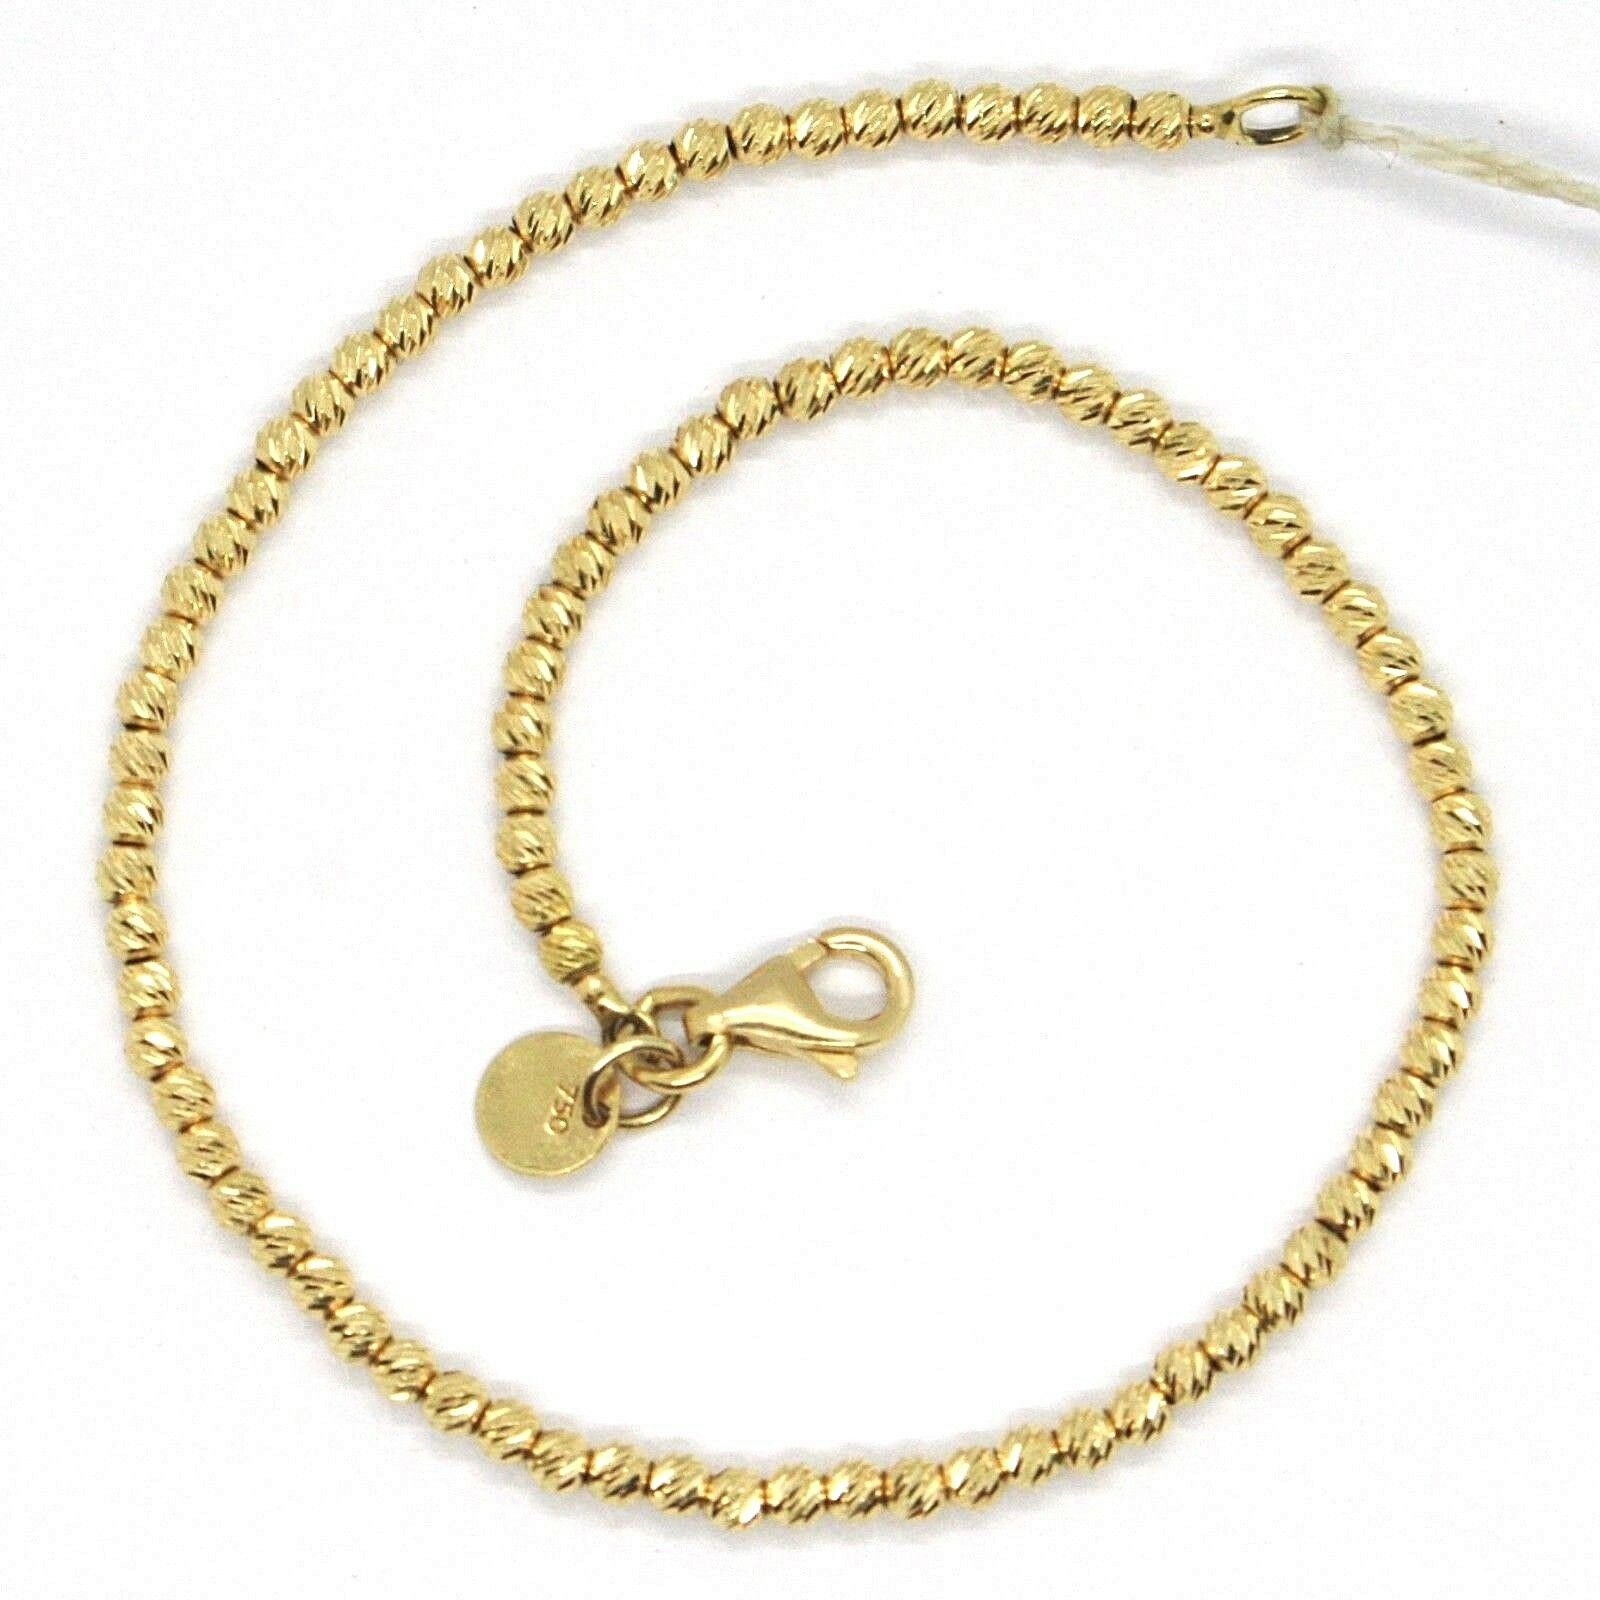 18K YELLOW GOLD BRACELET, 18 CM, FINELY WORKED SPHERES, 2 MM DIAMOND CUT BALLS